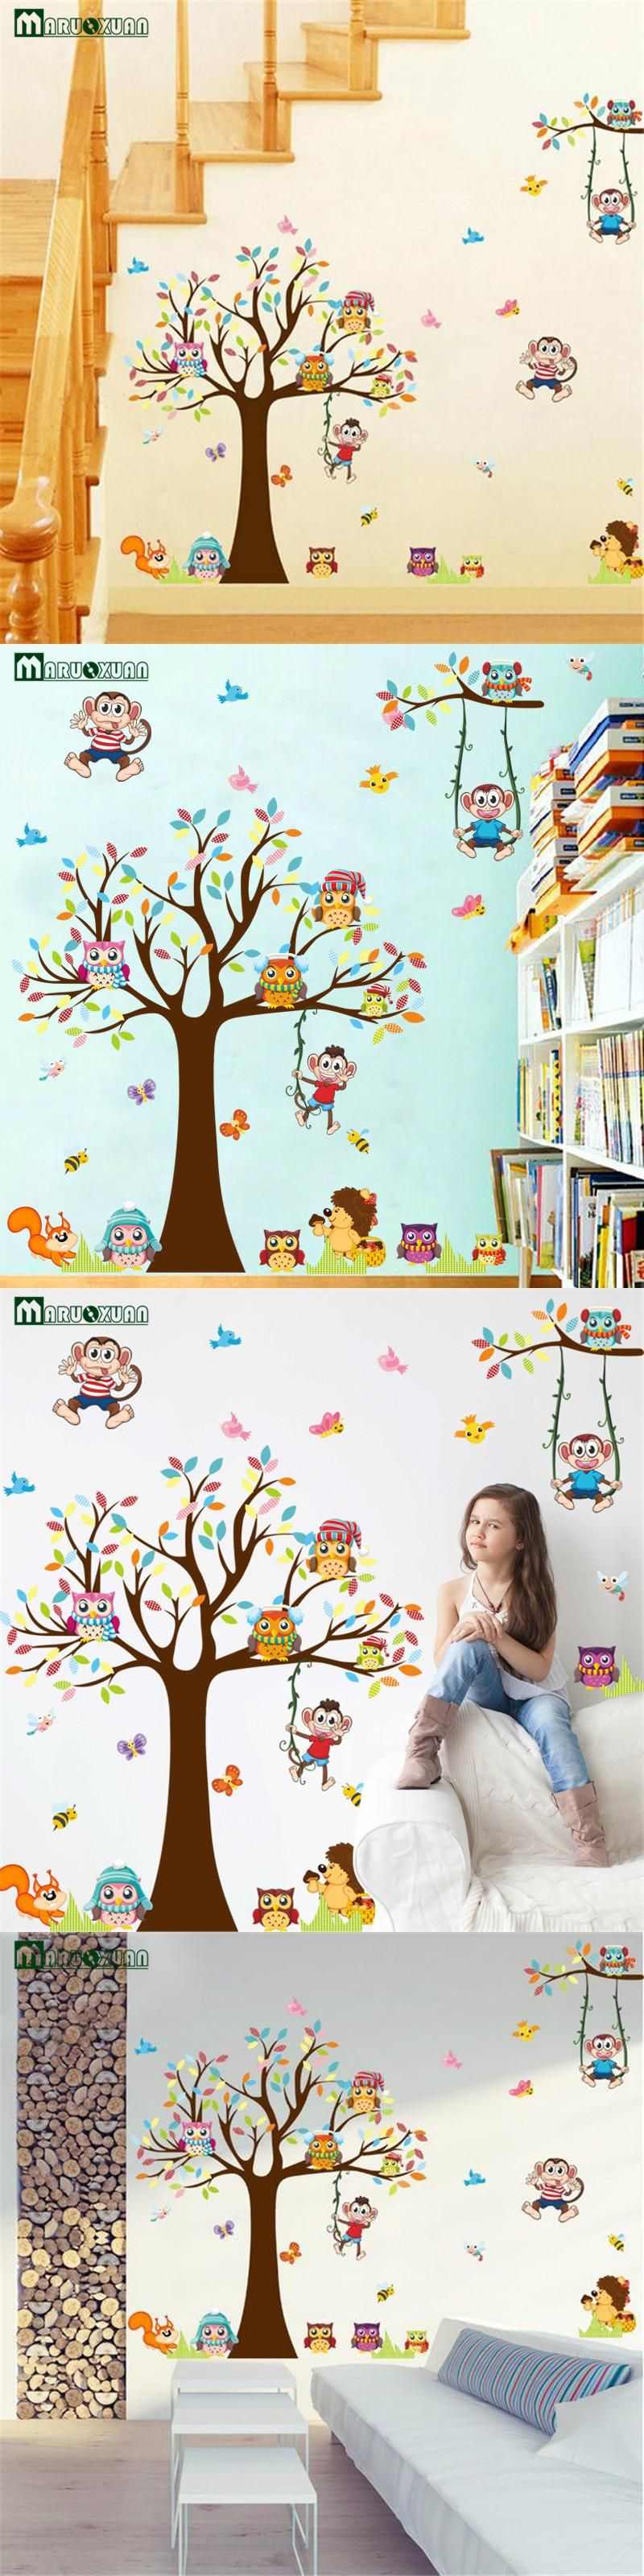 New Tree Cartoon Owl Monkey Animal Fashion Bedroom Living Room Kids ...